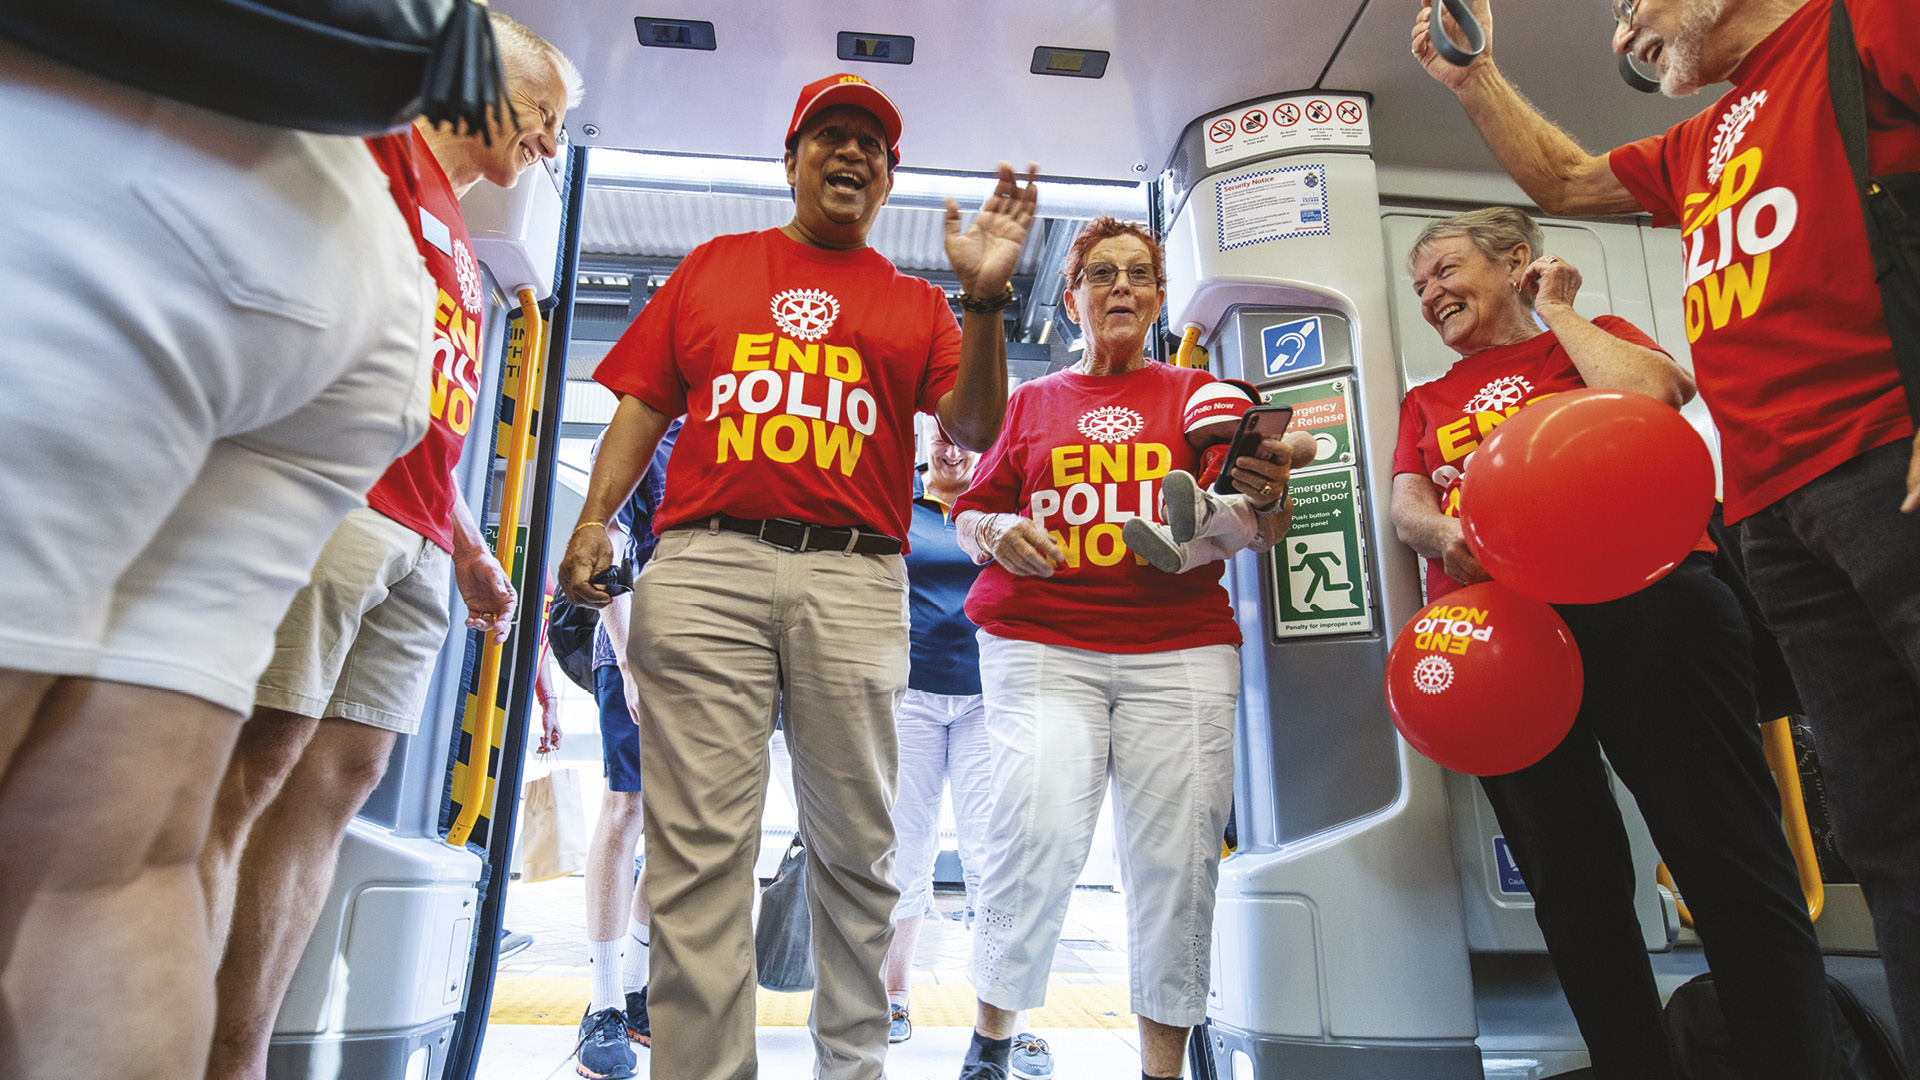 Queensland jumps on board the End Polio Now train